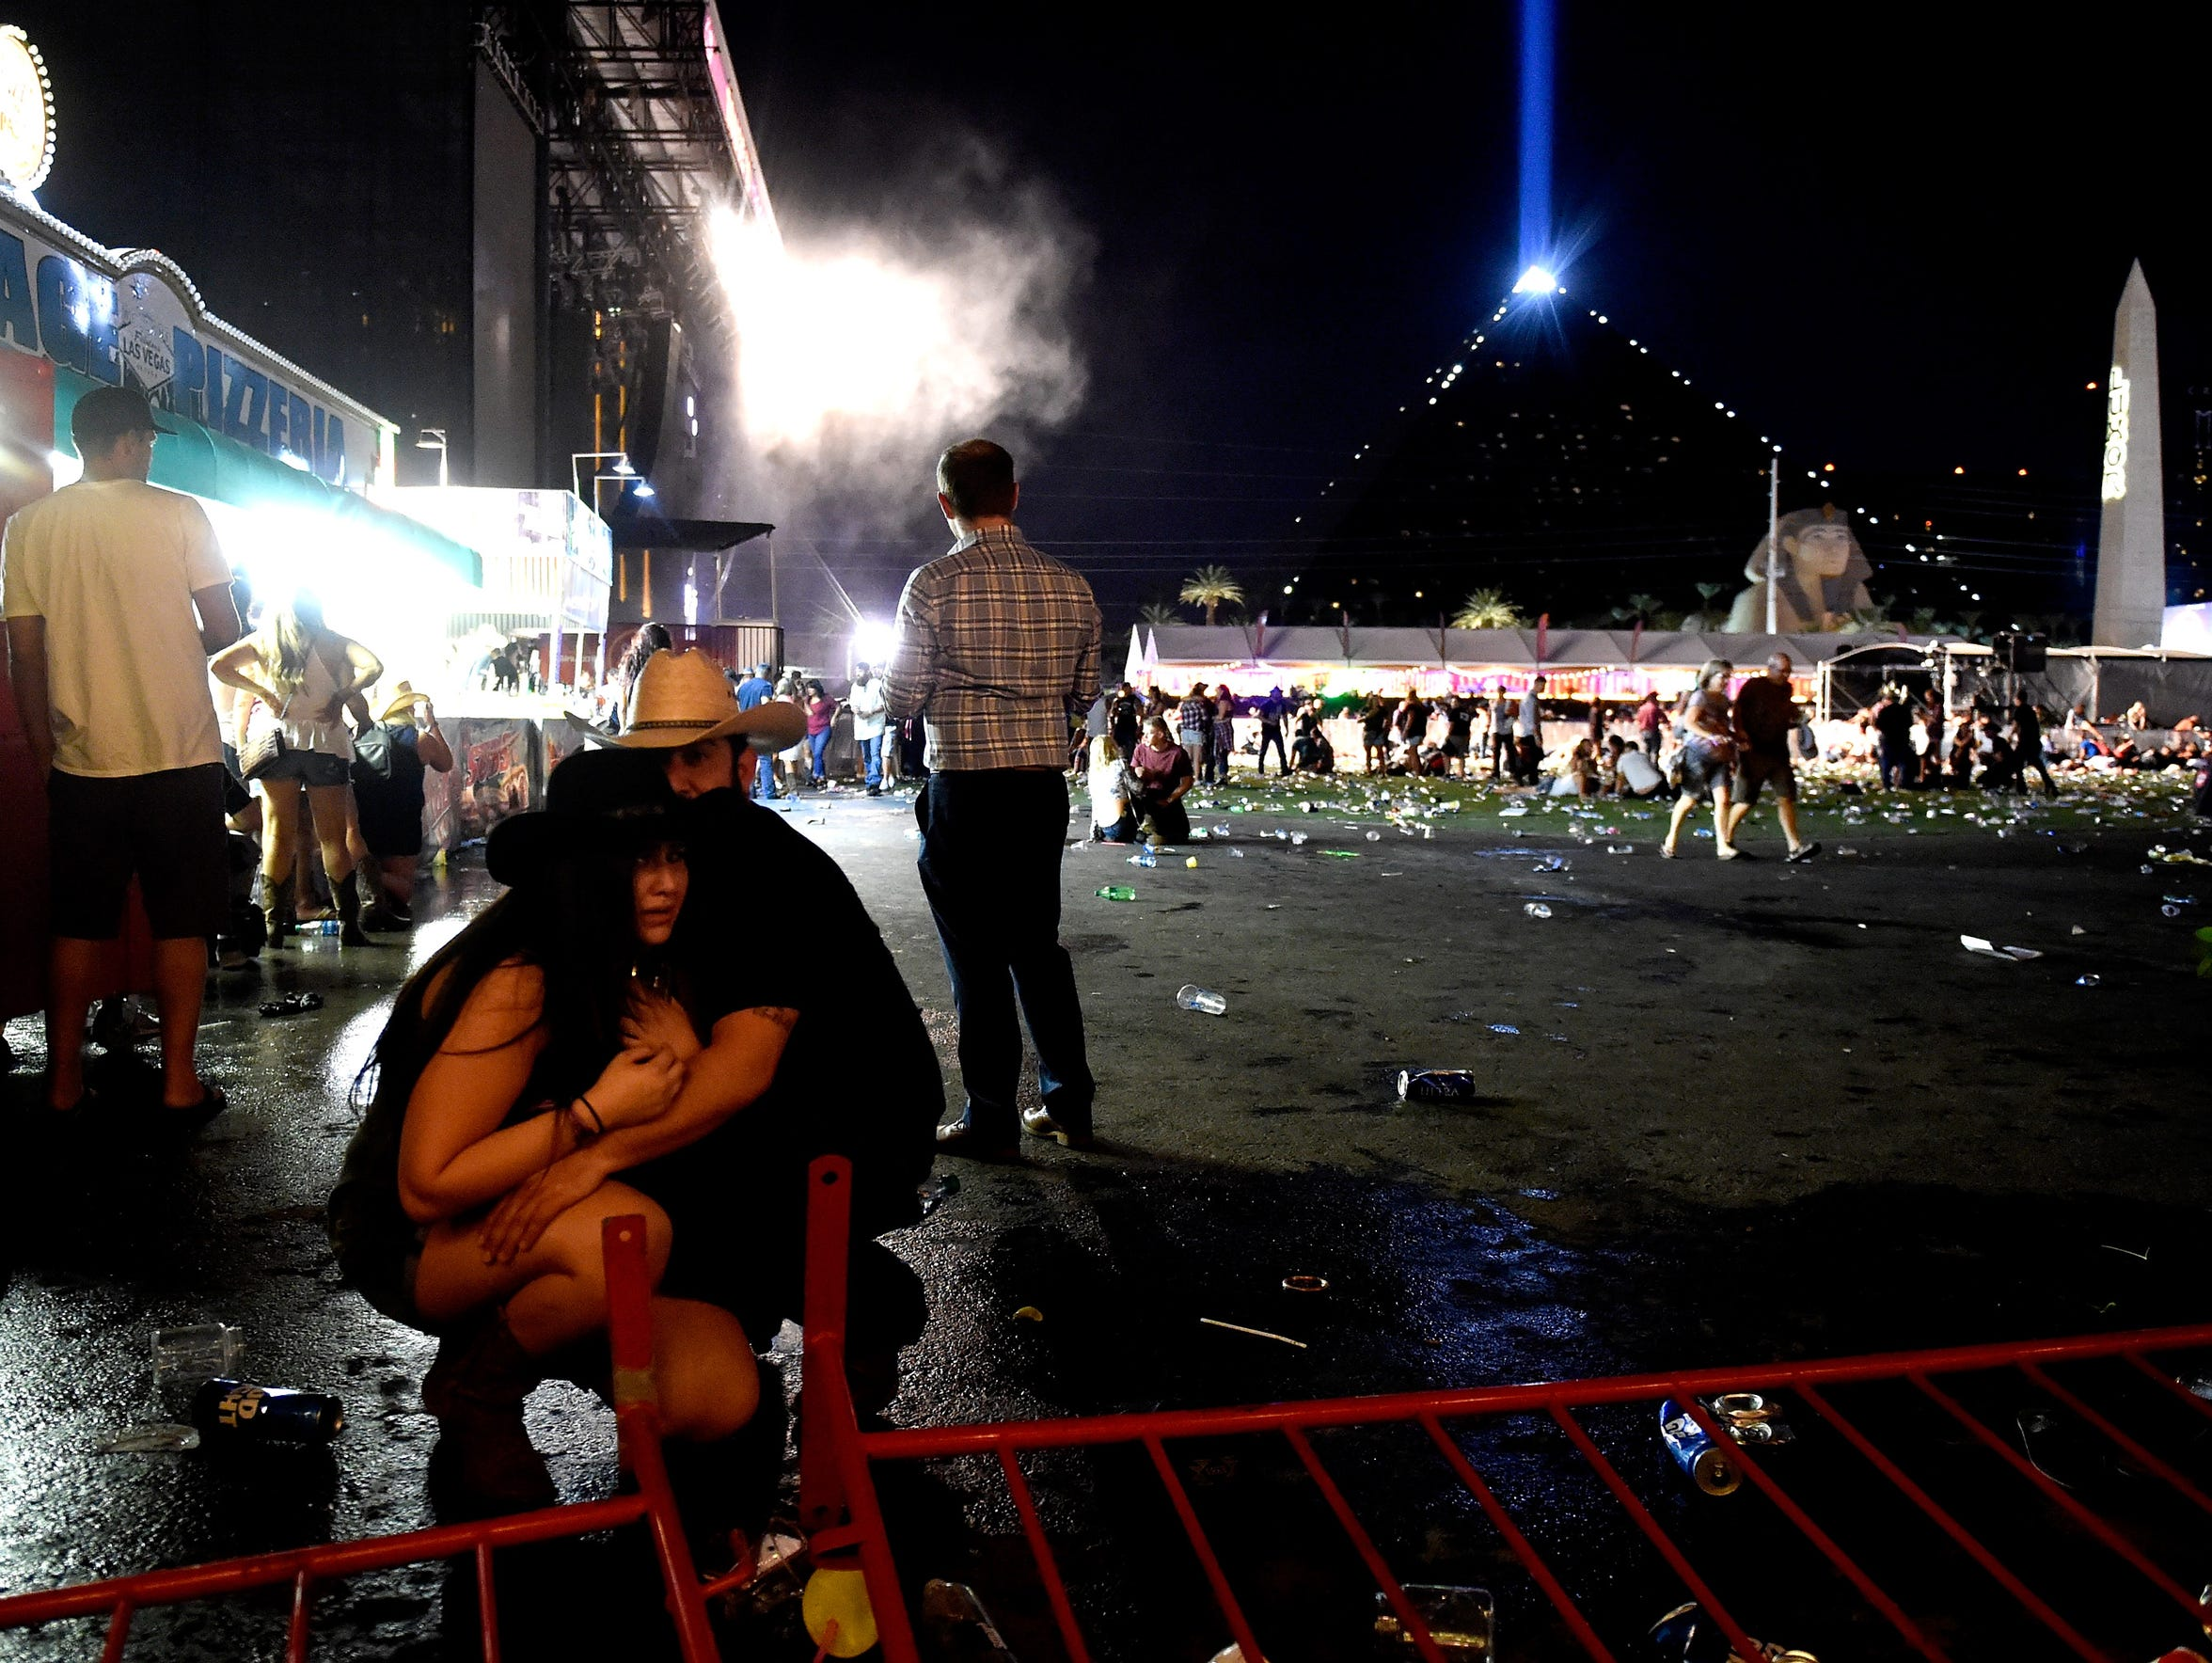 People take cover at the Route 91 Harvest country music festival.